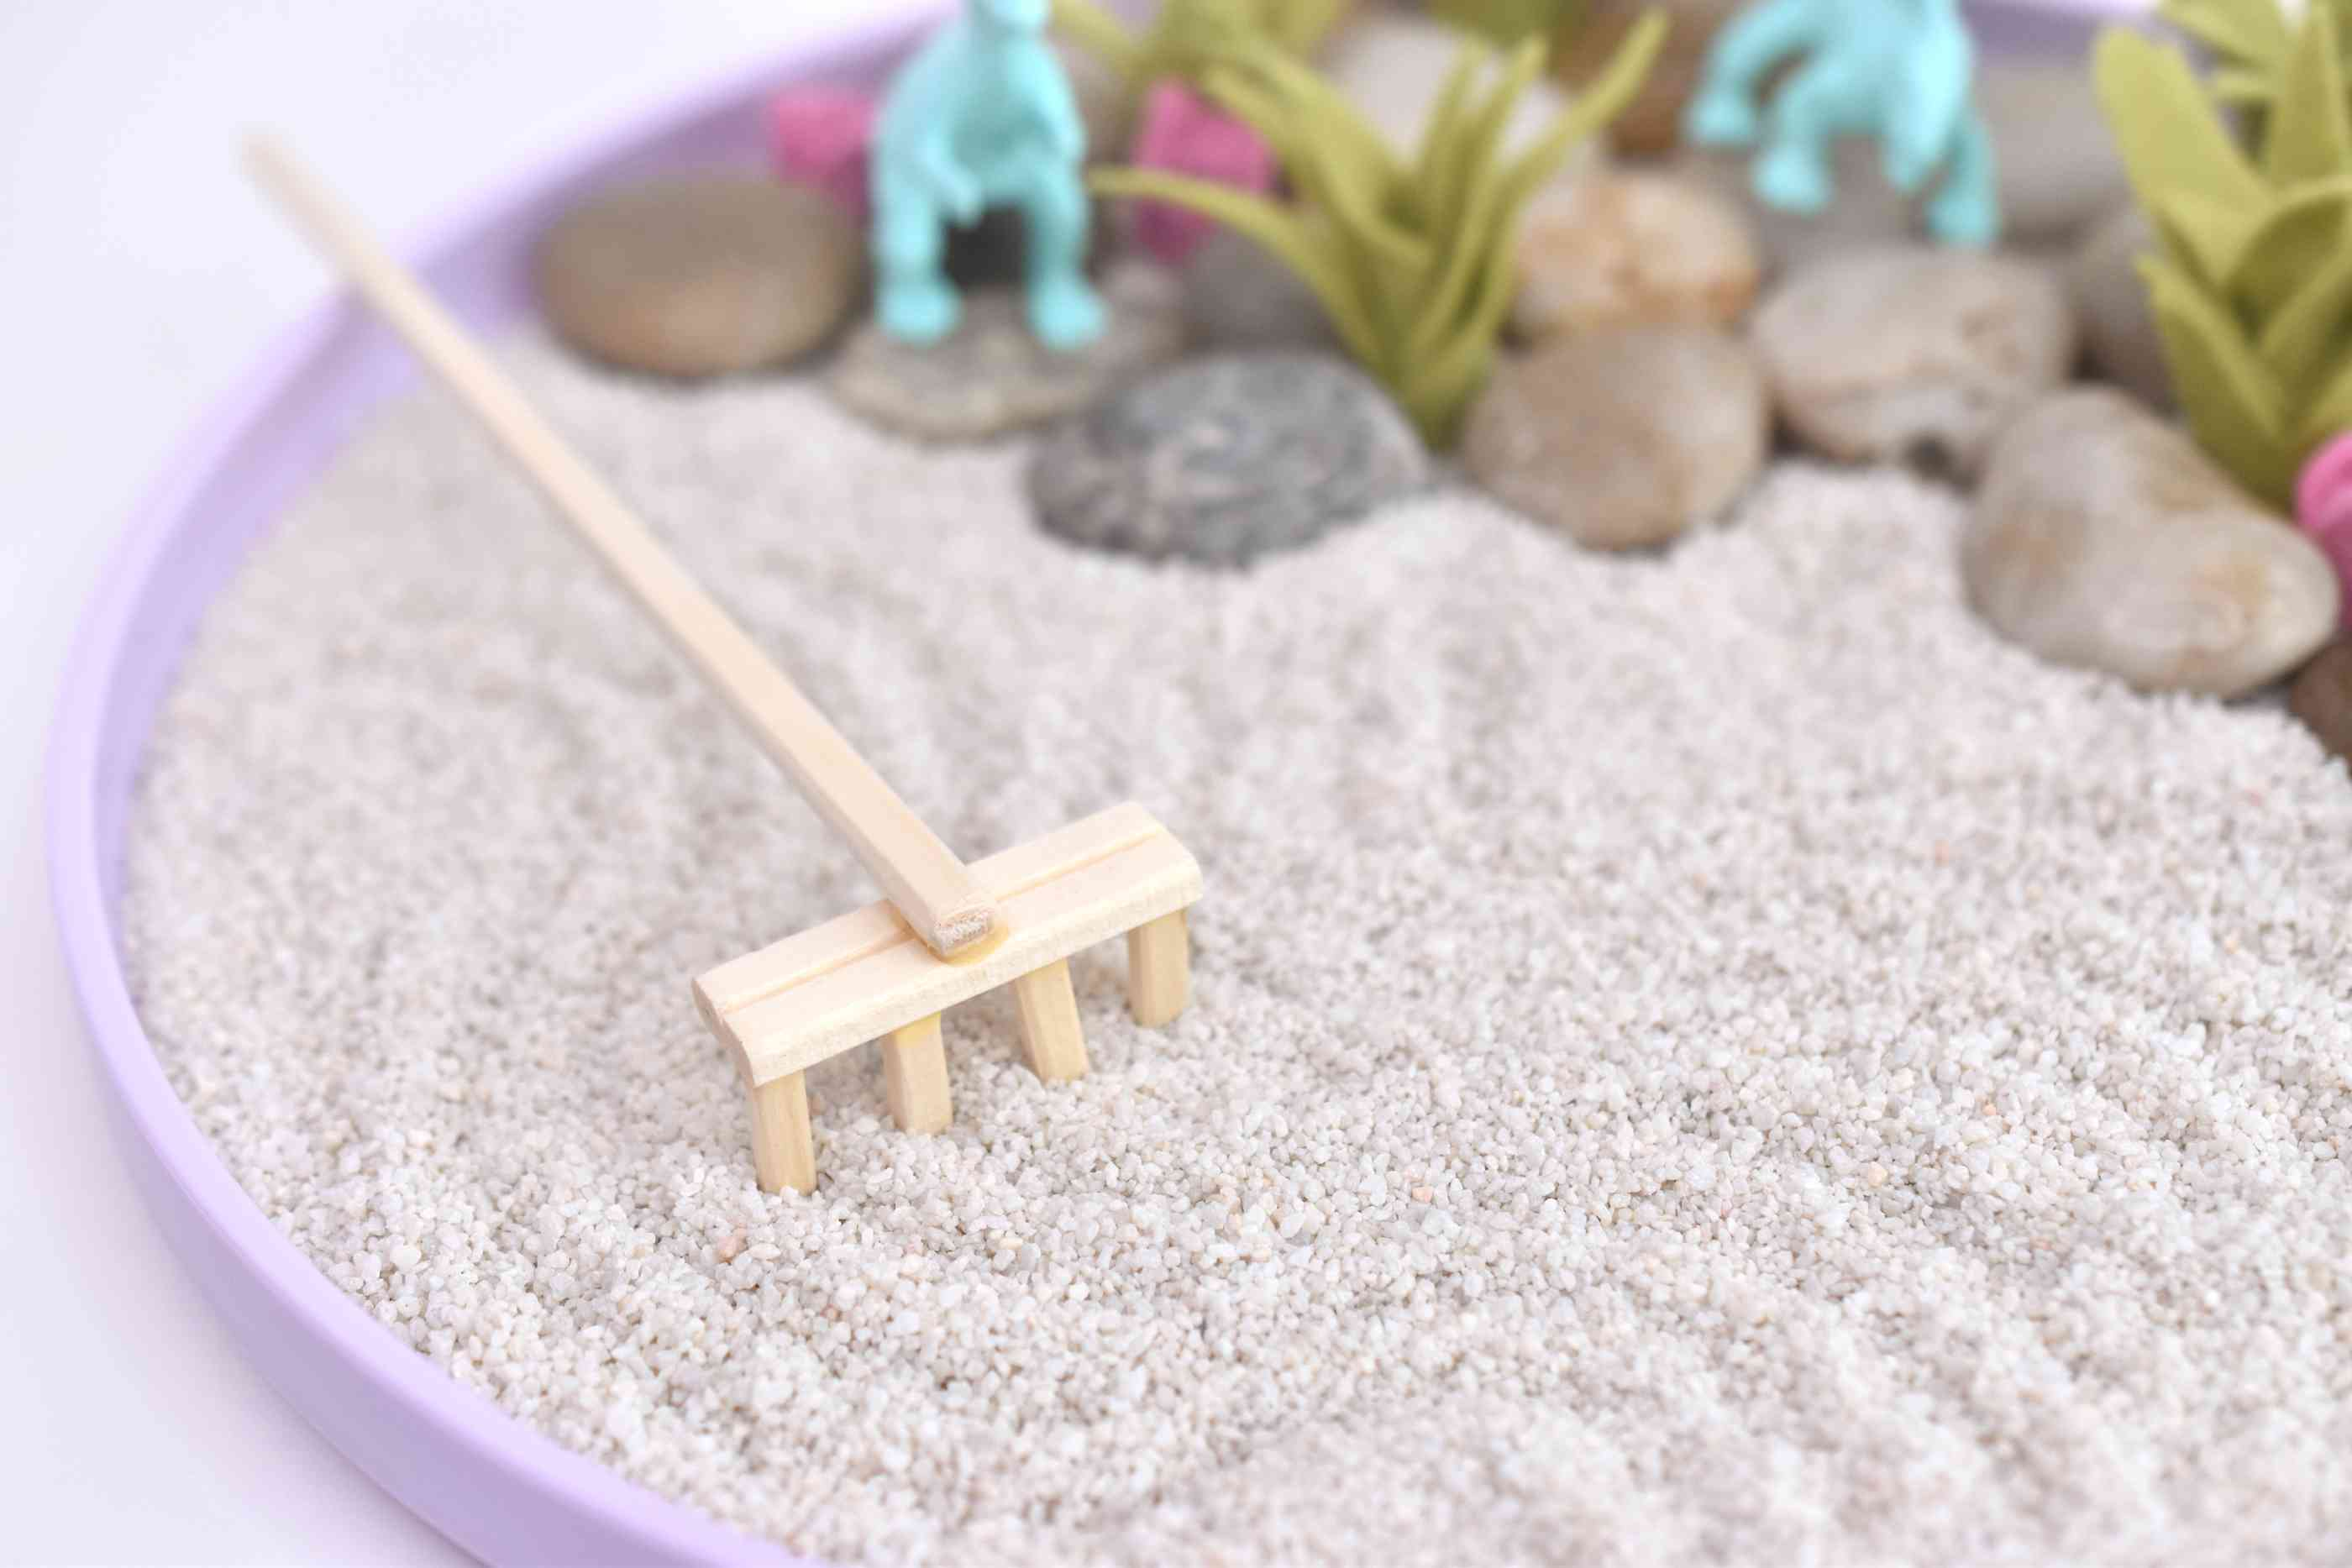 Use the Rake to Make Designs in the Sand